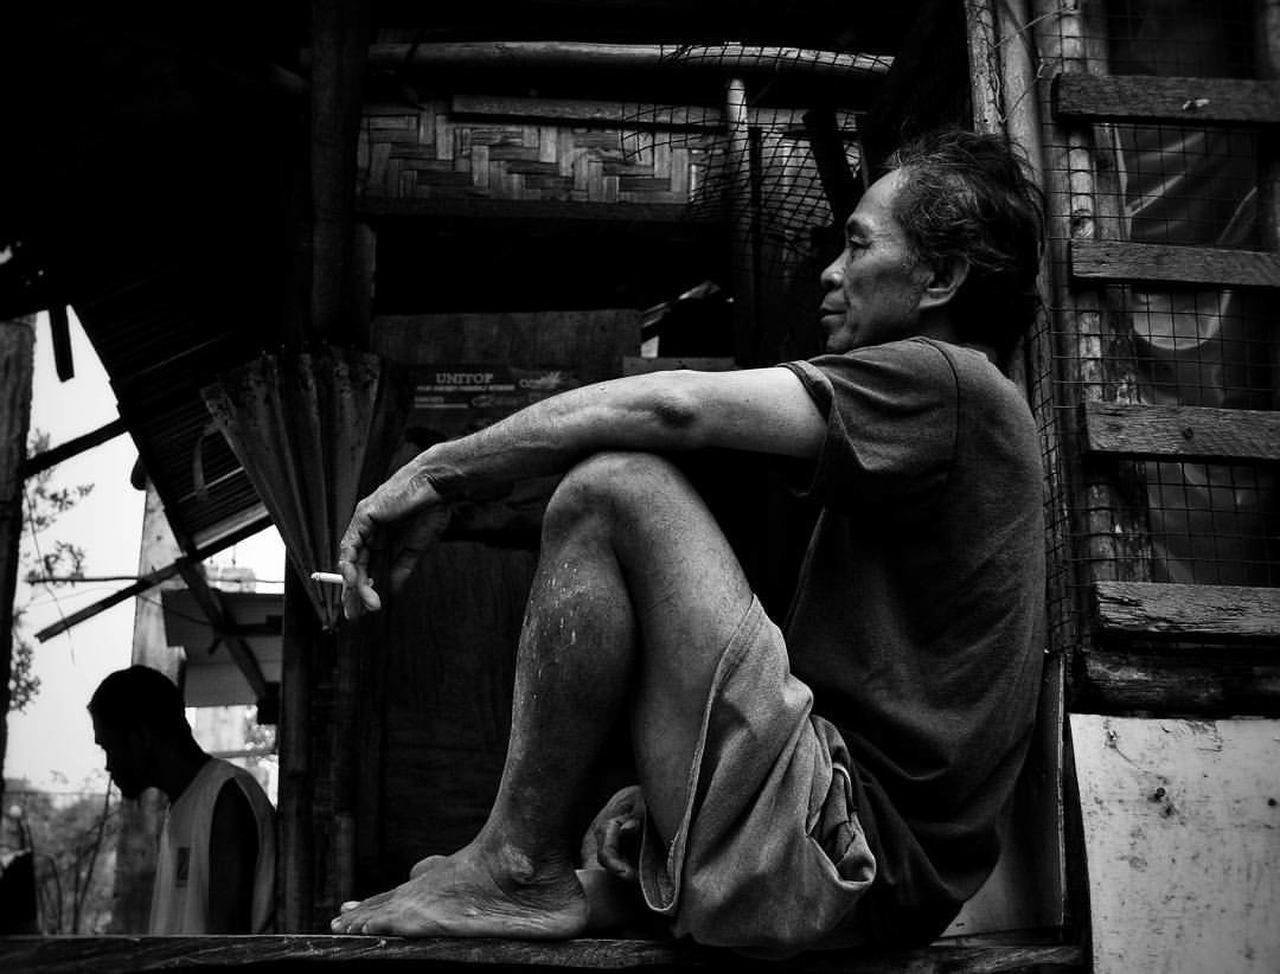 Thinking Thinking About Life Thinking Of A Master Plan Silence Speaks Silence Before The Storm Silence Is Luxurious Nothingbox Men Life Life's Simple Pleasures... Smoke Cigarette  Cigarette Time Cigarette Break Metime Metimeissoprecious Blackandwhite Black & White People Philippines